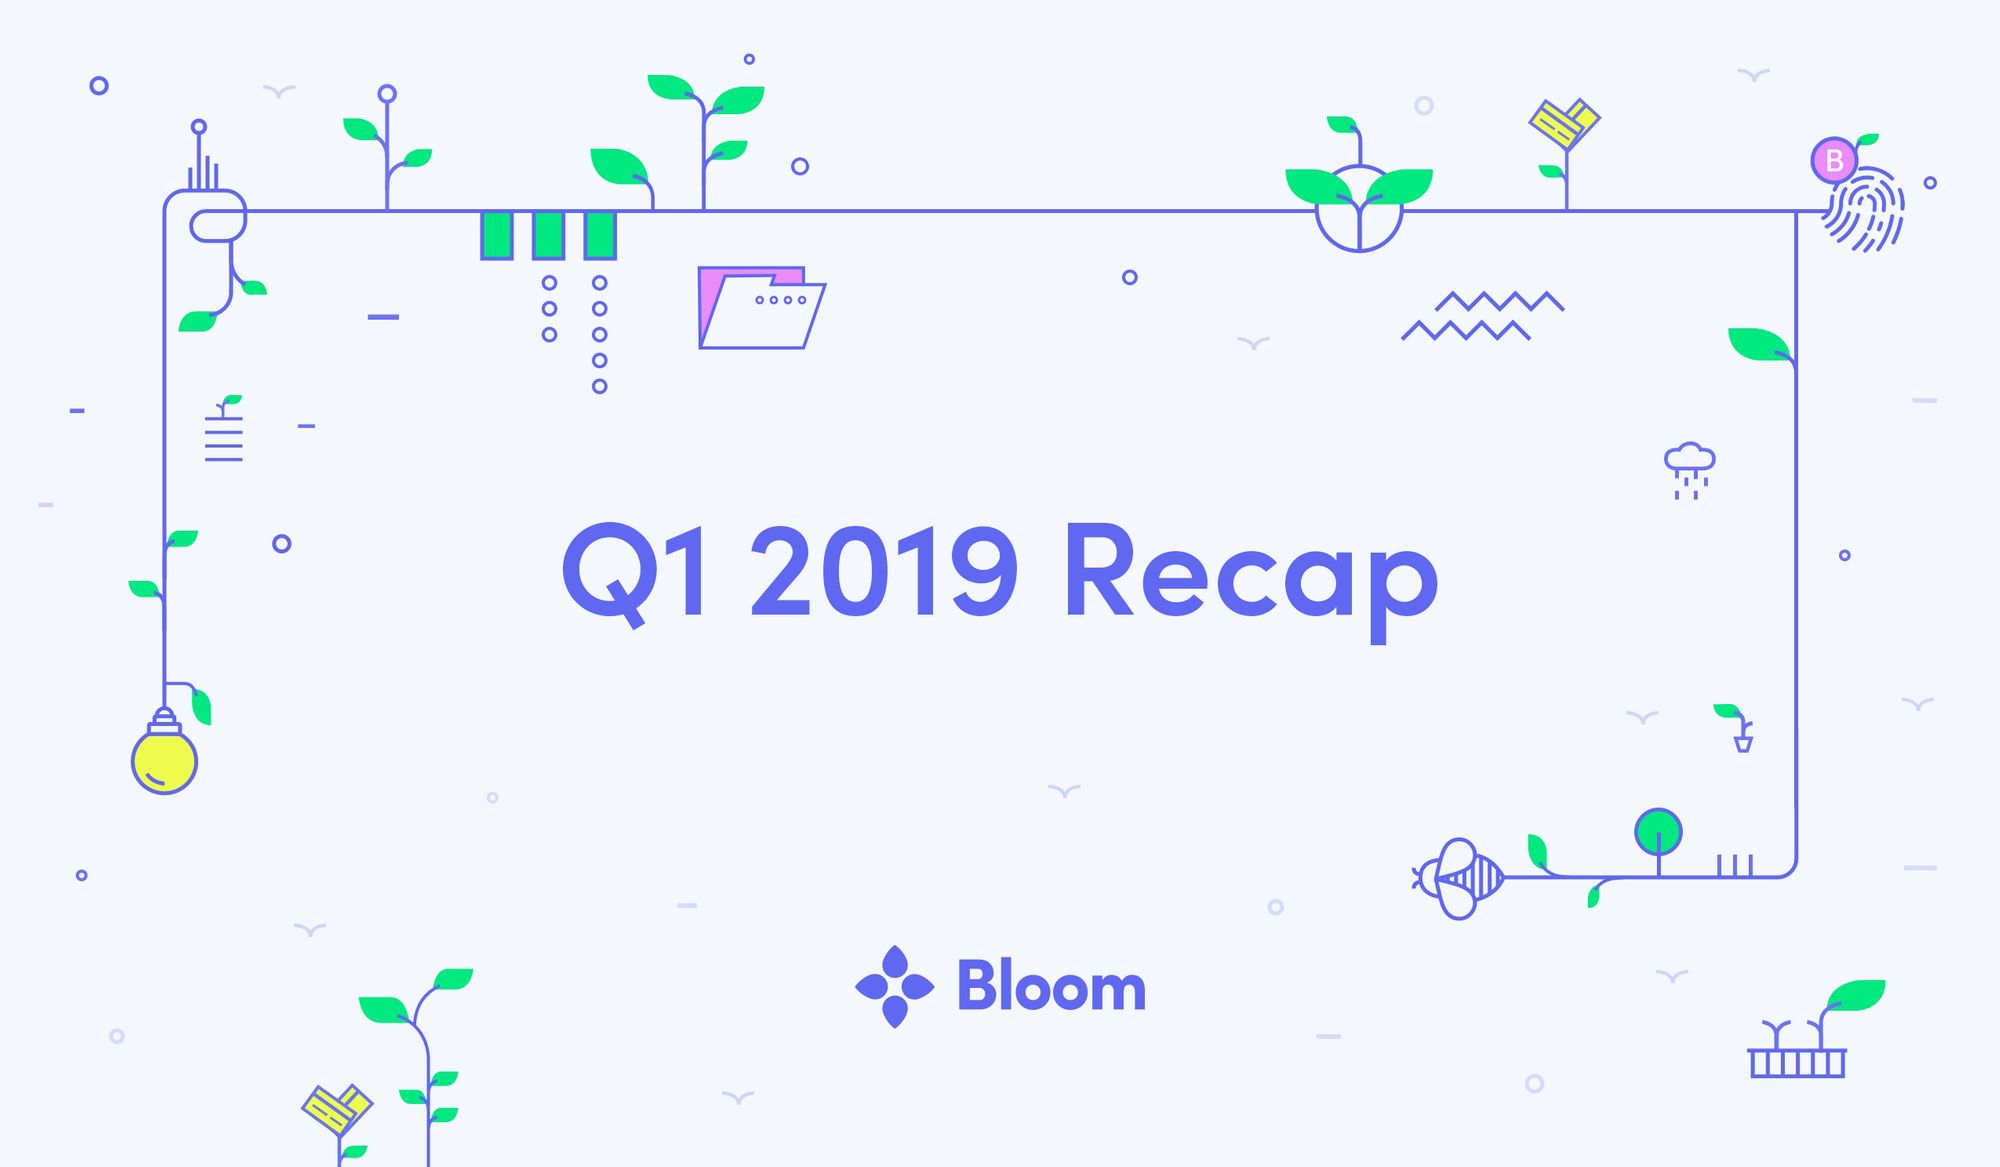 bloom secure identity